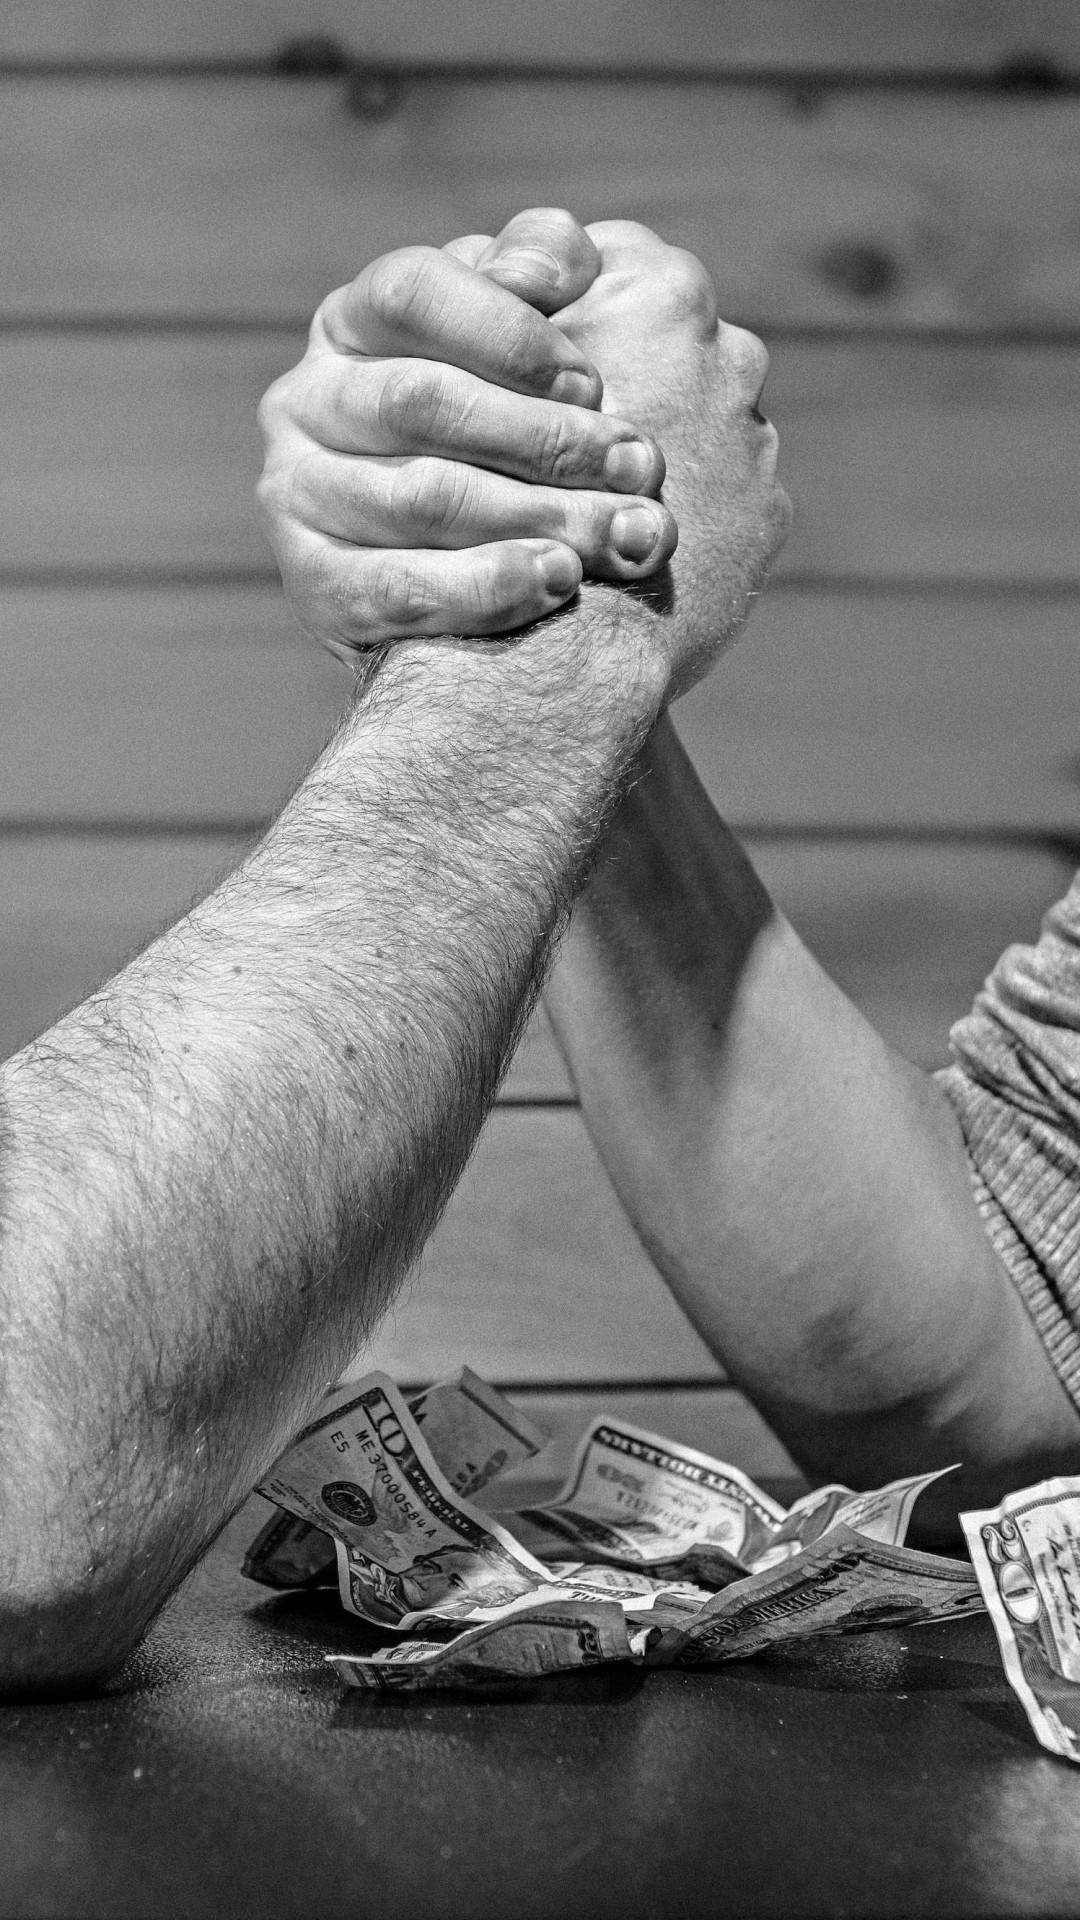 Arm Wrestling Wallpaper for SONY Xperia Z3